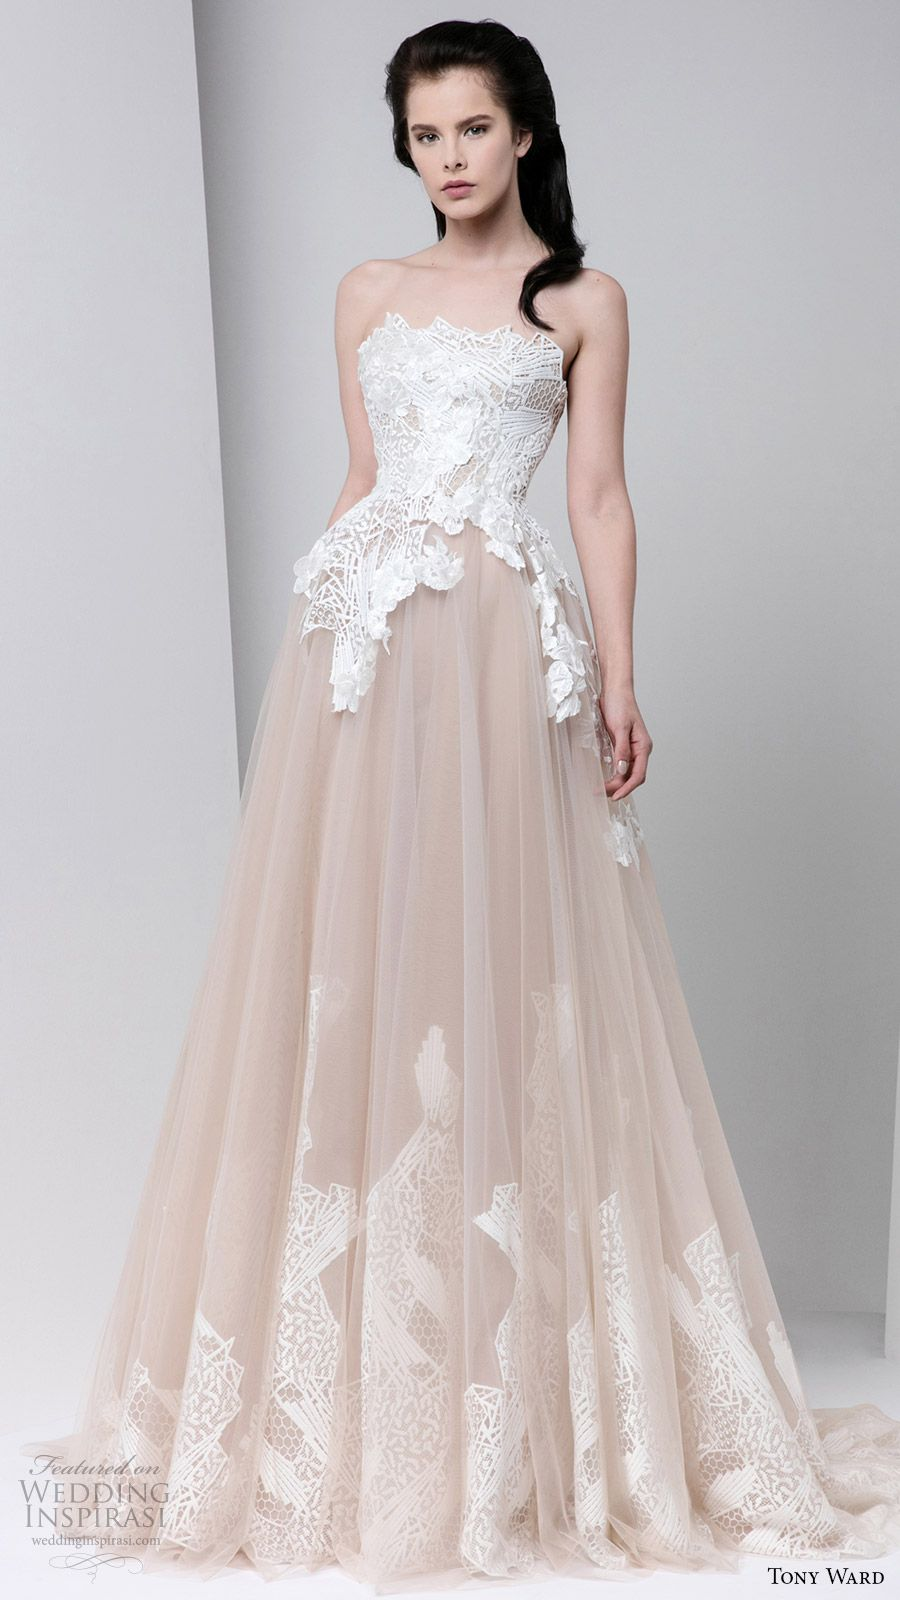 Tony ward fall readytowear dresses weddingdress pinterest